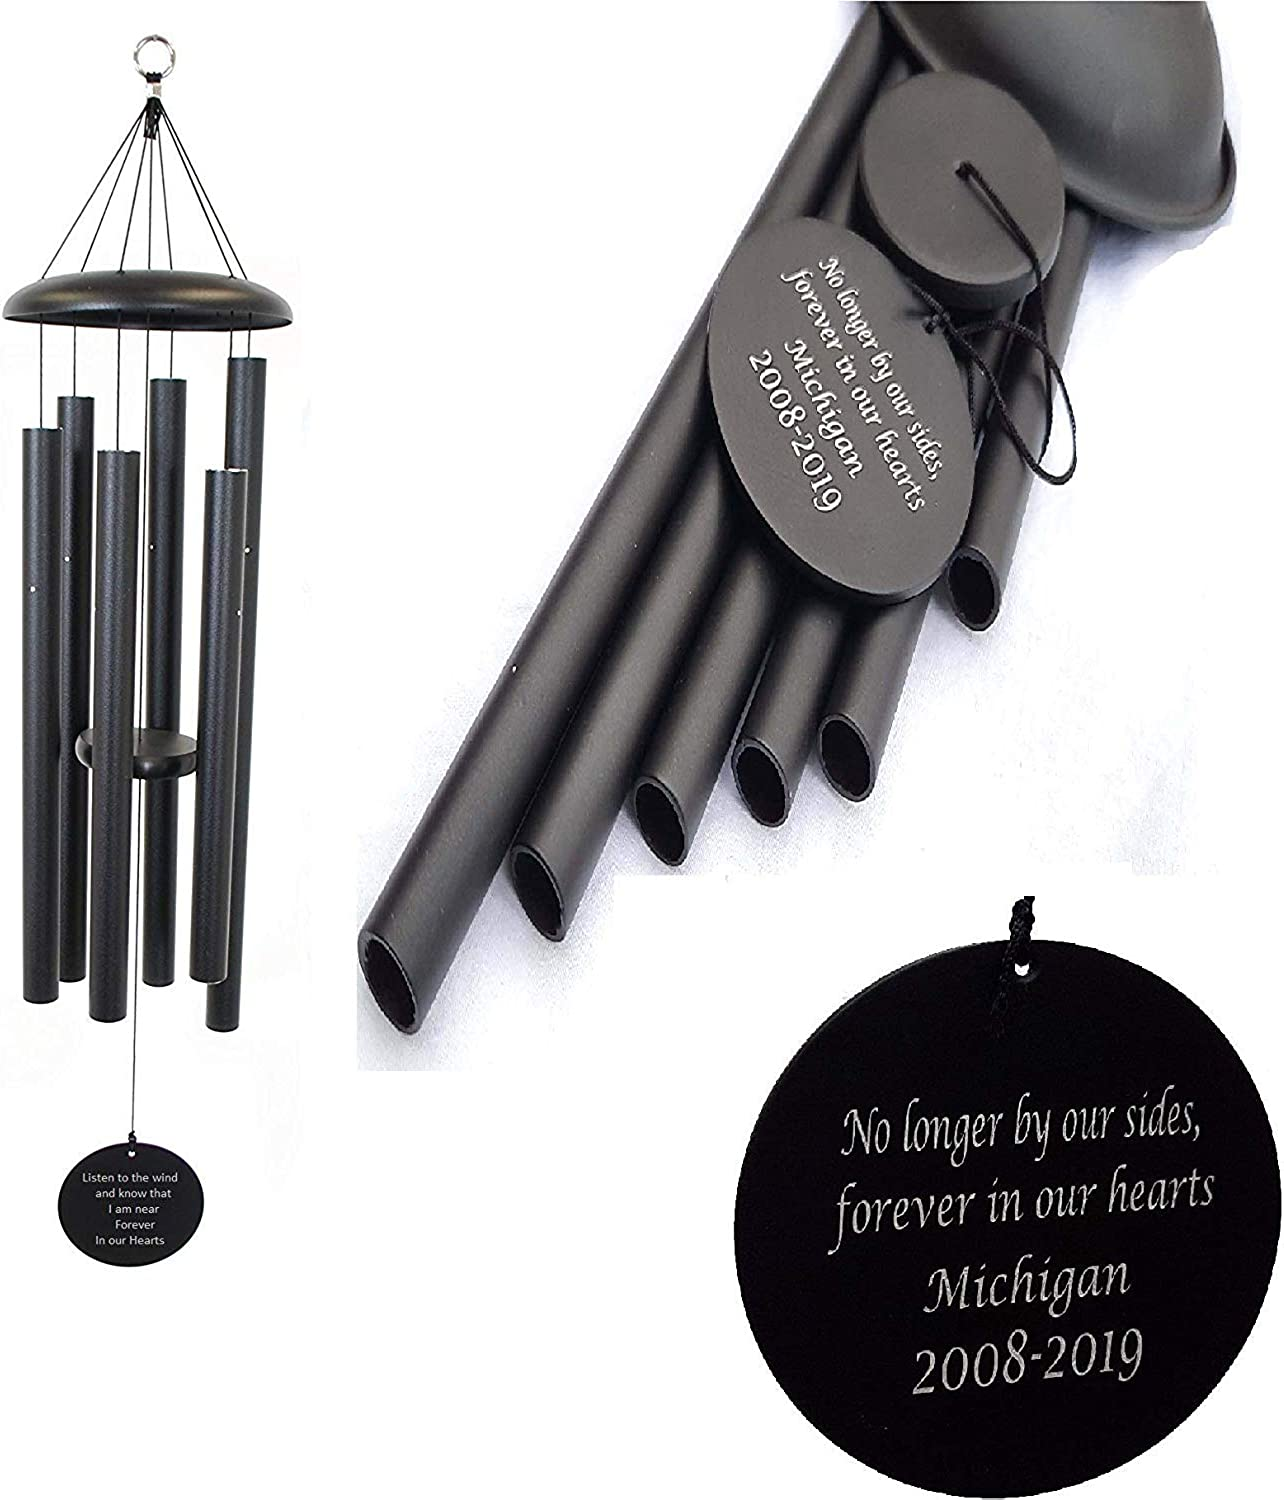 Memorial Wind Chimes Personalized Outdoor Sympathy Wind Chimes Gift Keepsake for Deceased Loved Aluminum Tubes